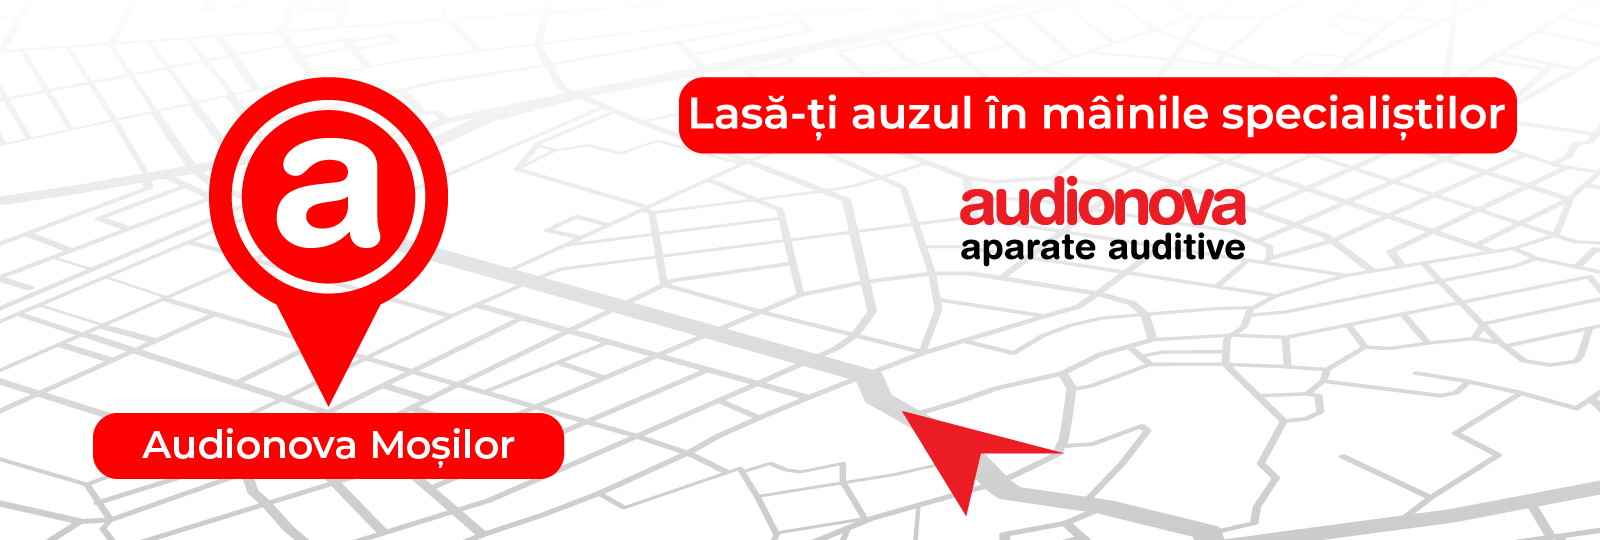 aparate auditive bucuresti mosilor